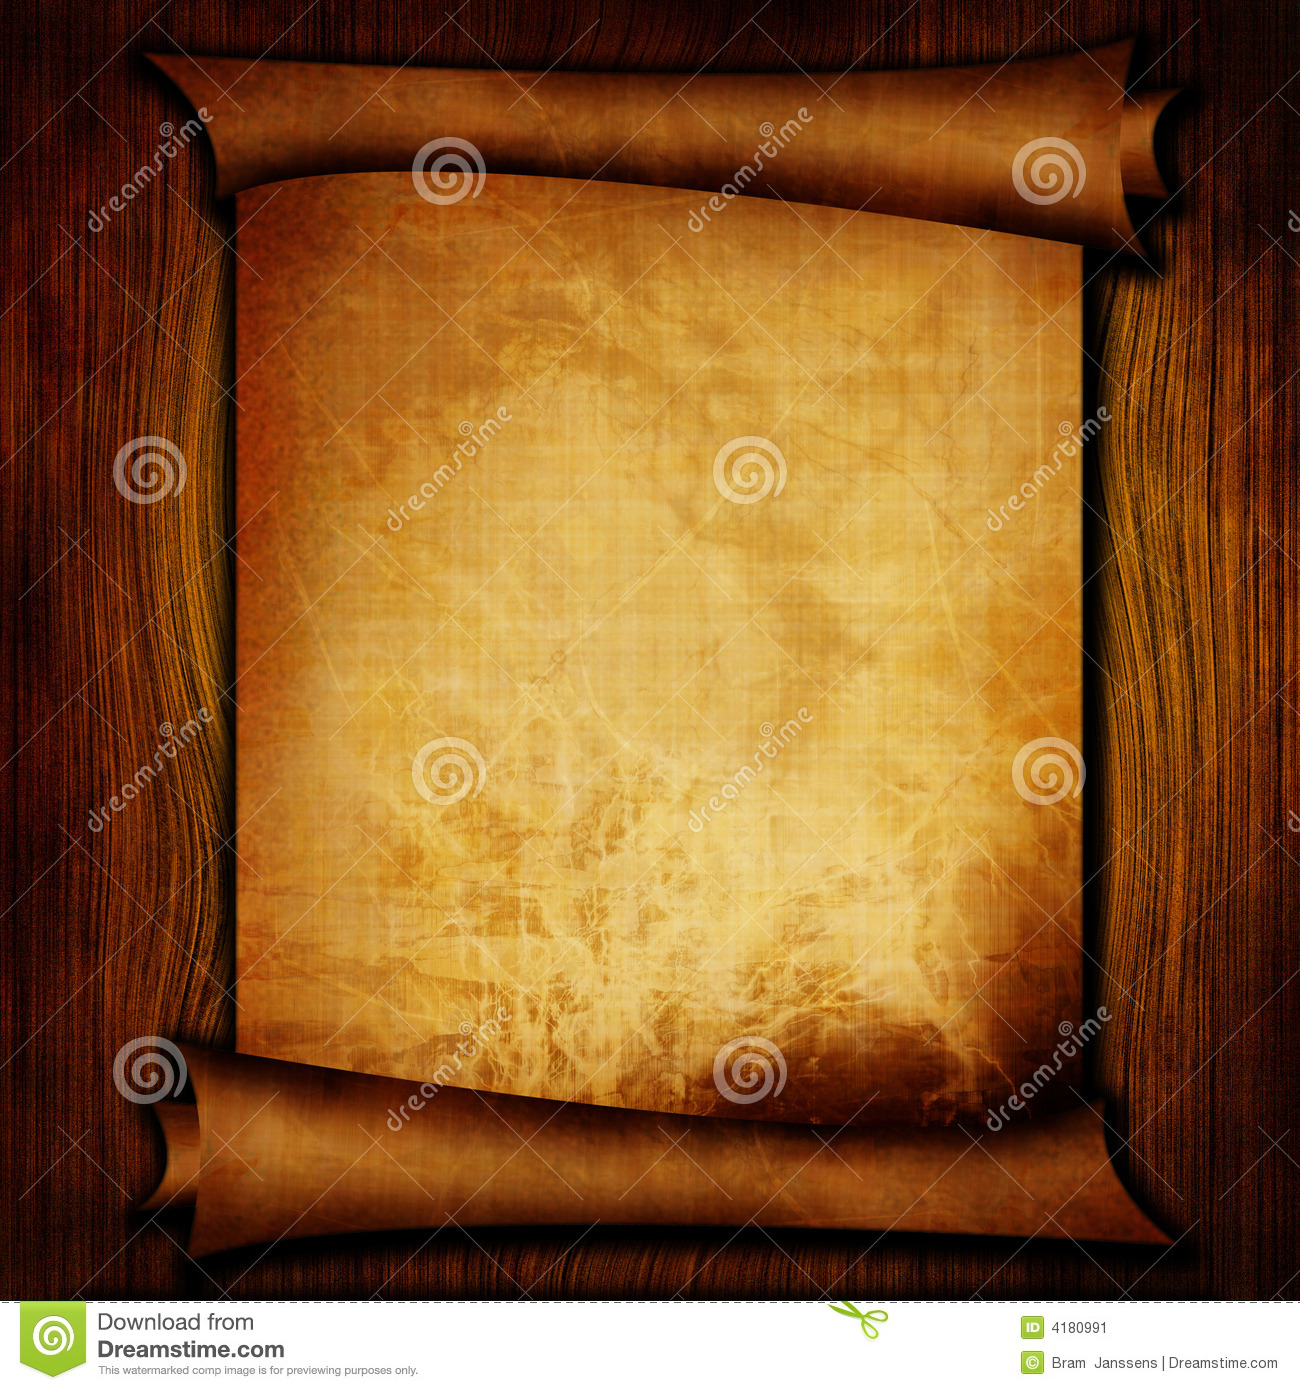 Ancient Scroll: Ancient Scroll Stock Image